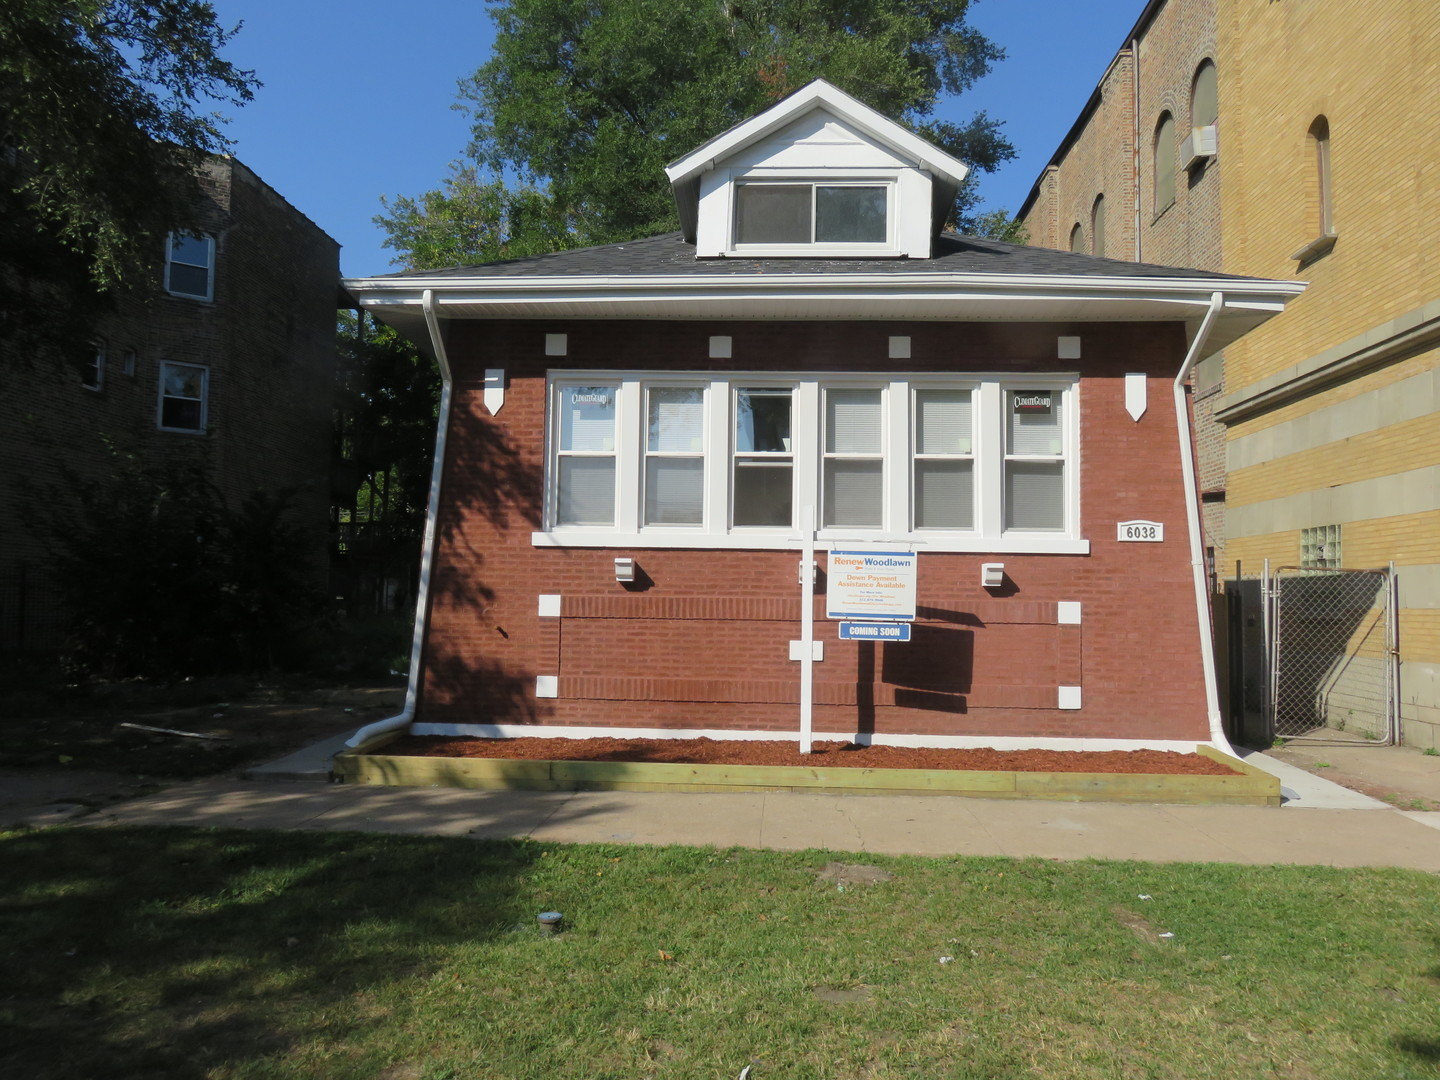 6038 SOUTH CHAMPLAIN AVENUE, CHICAGO, IL 60637